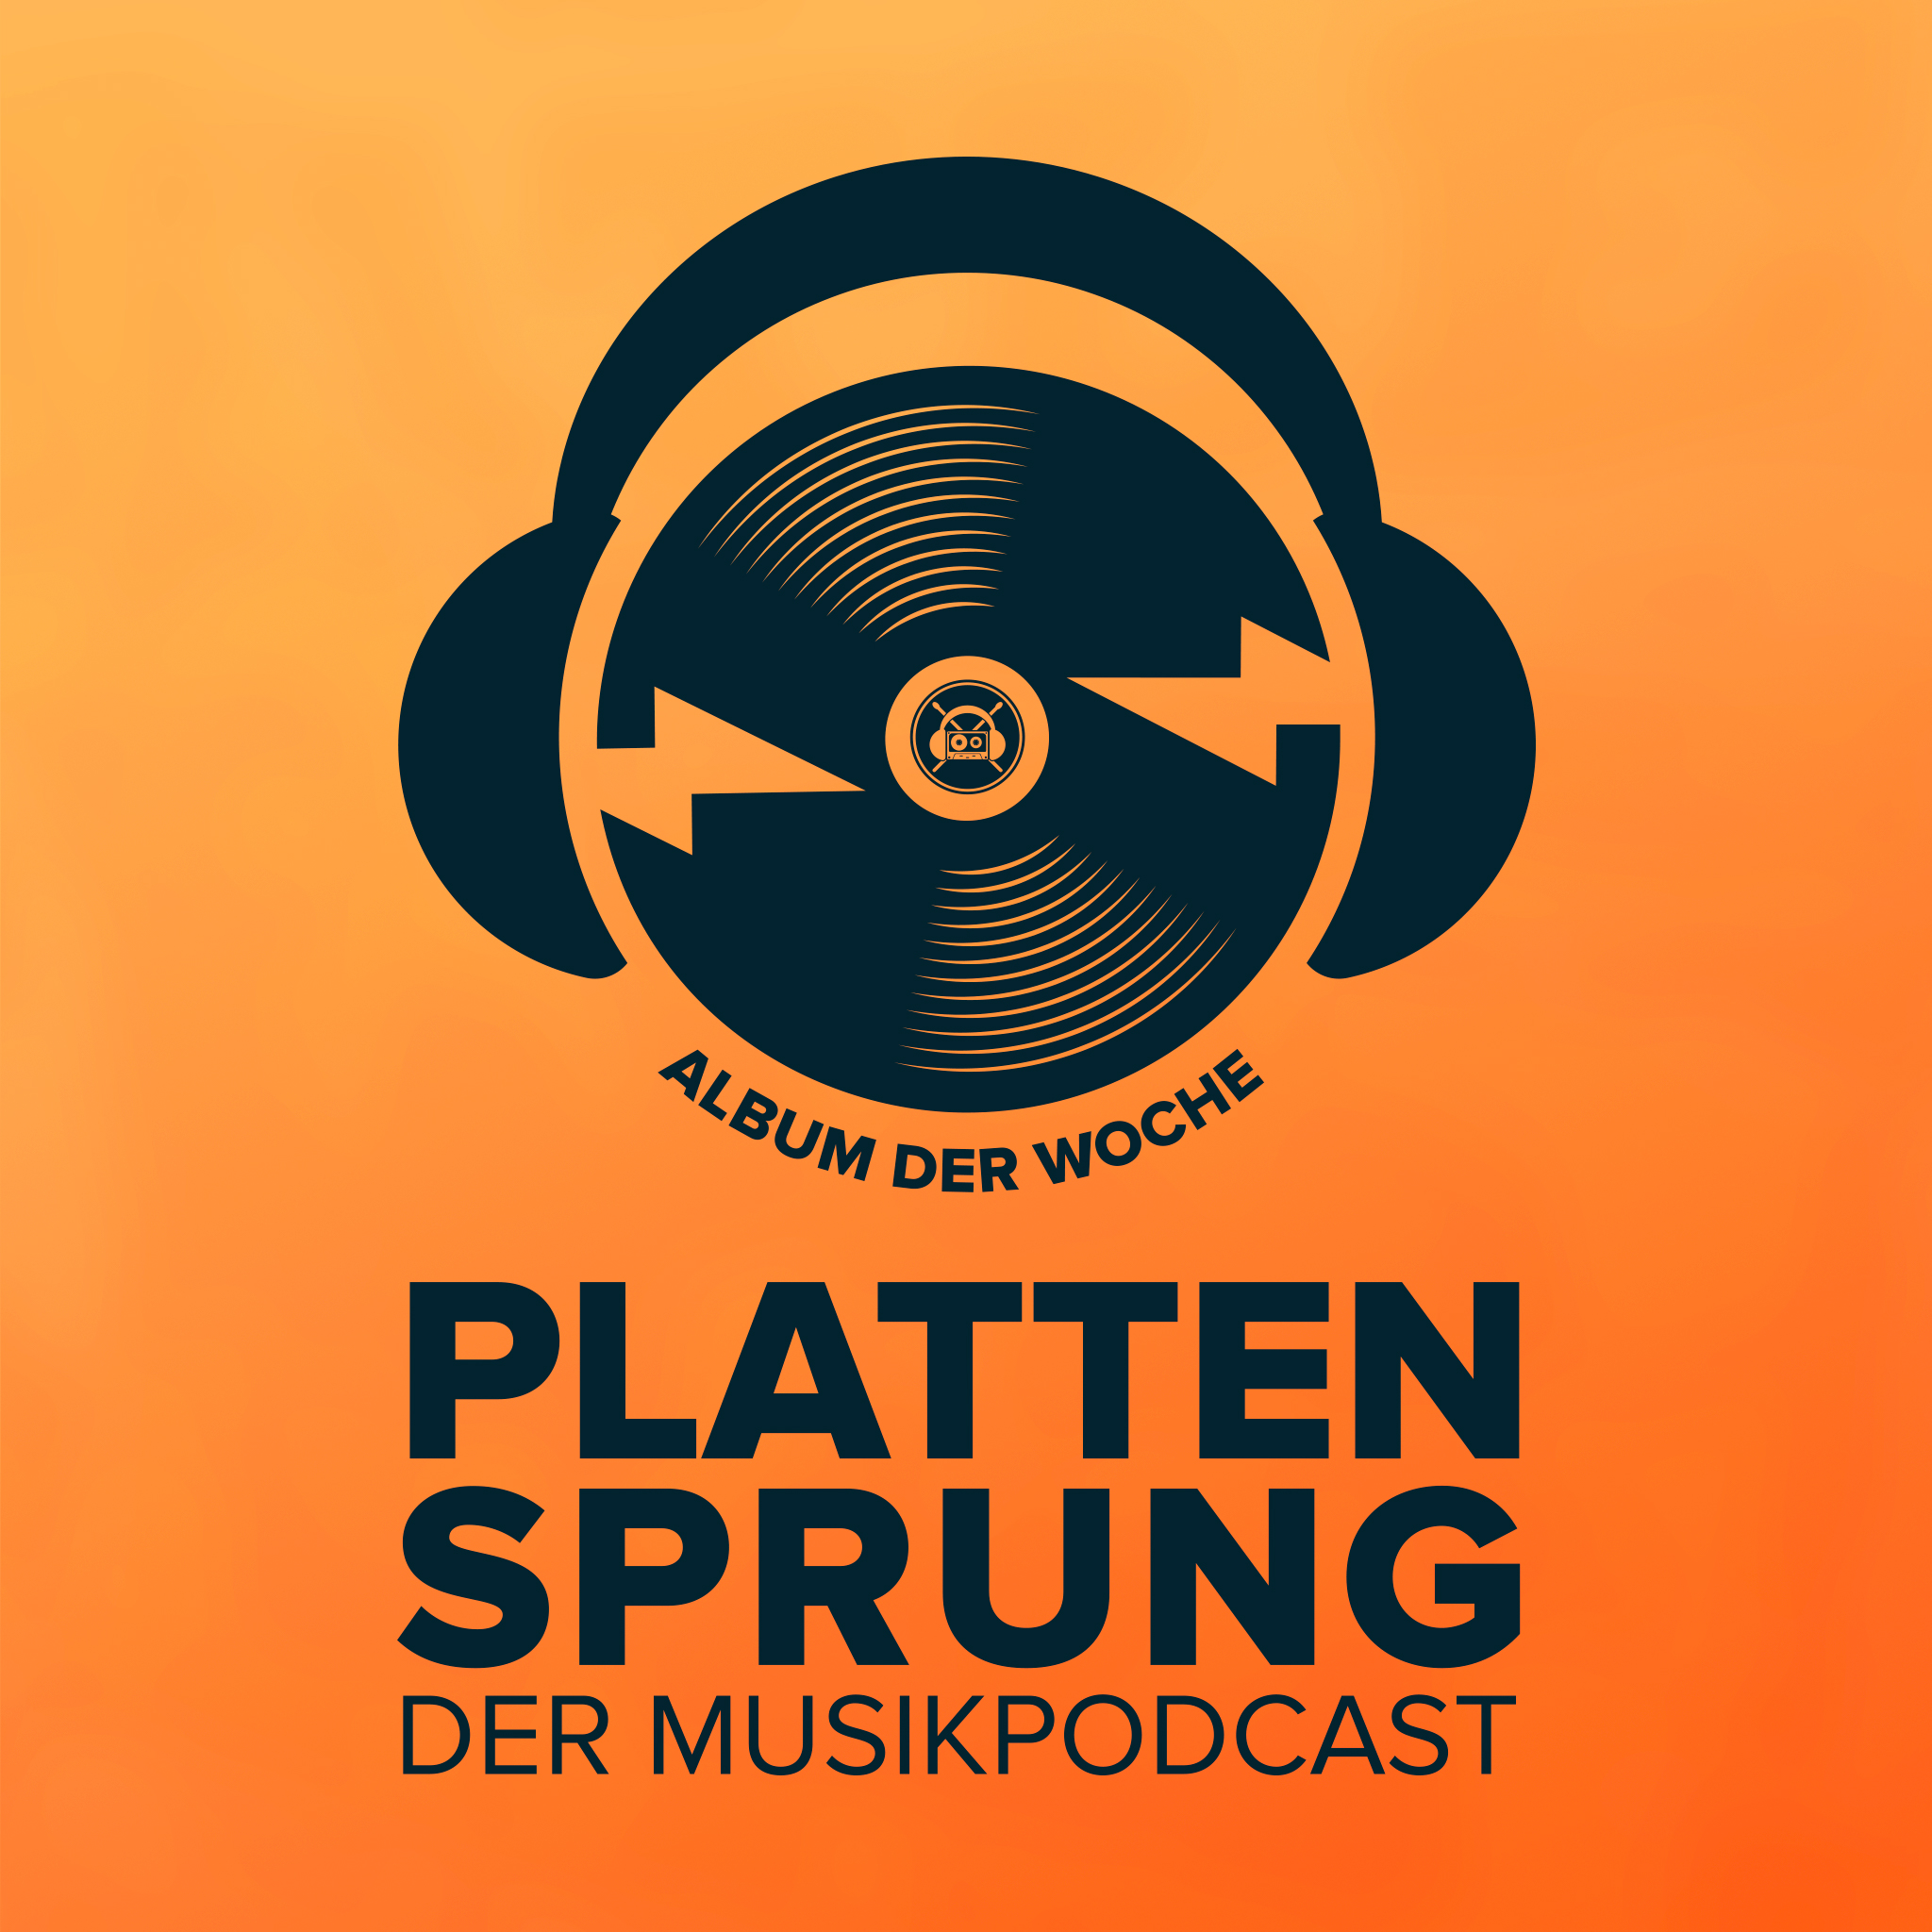 Plattensprung Podcast